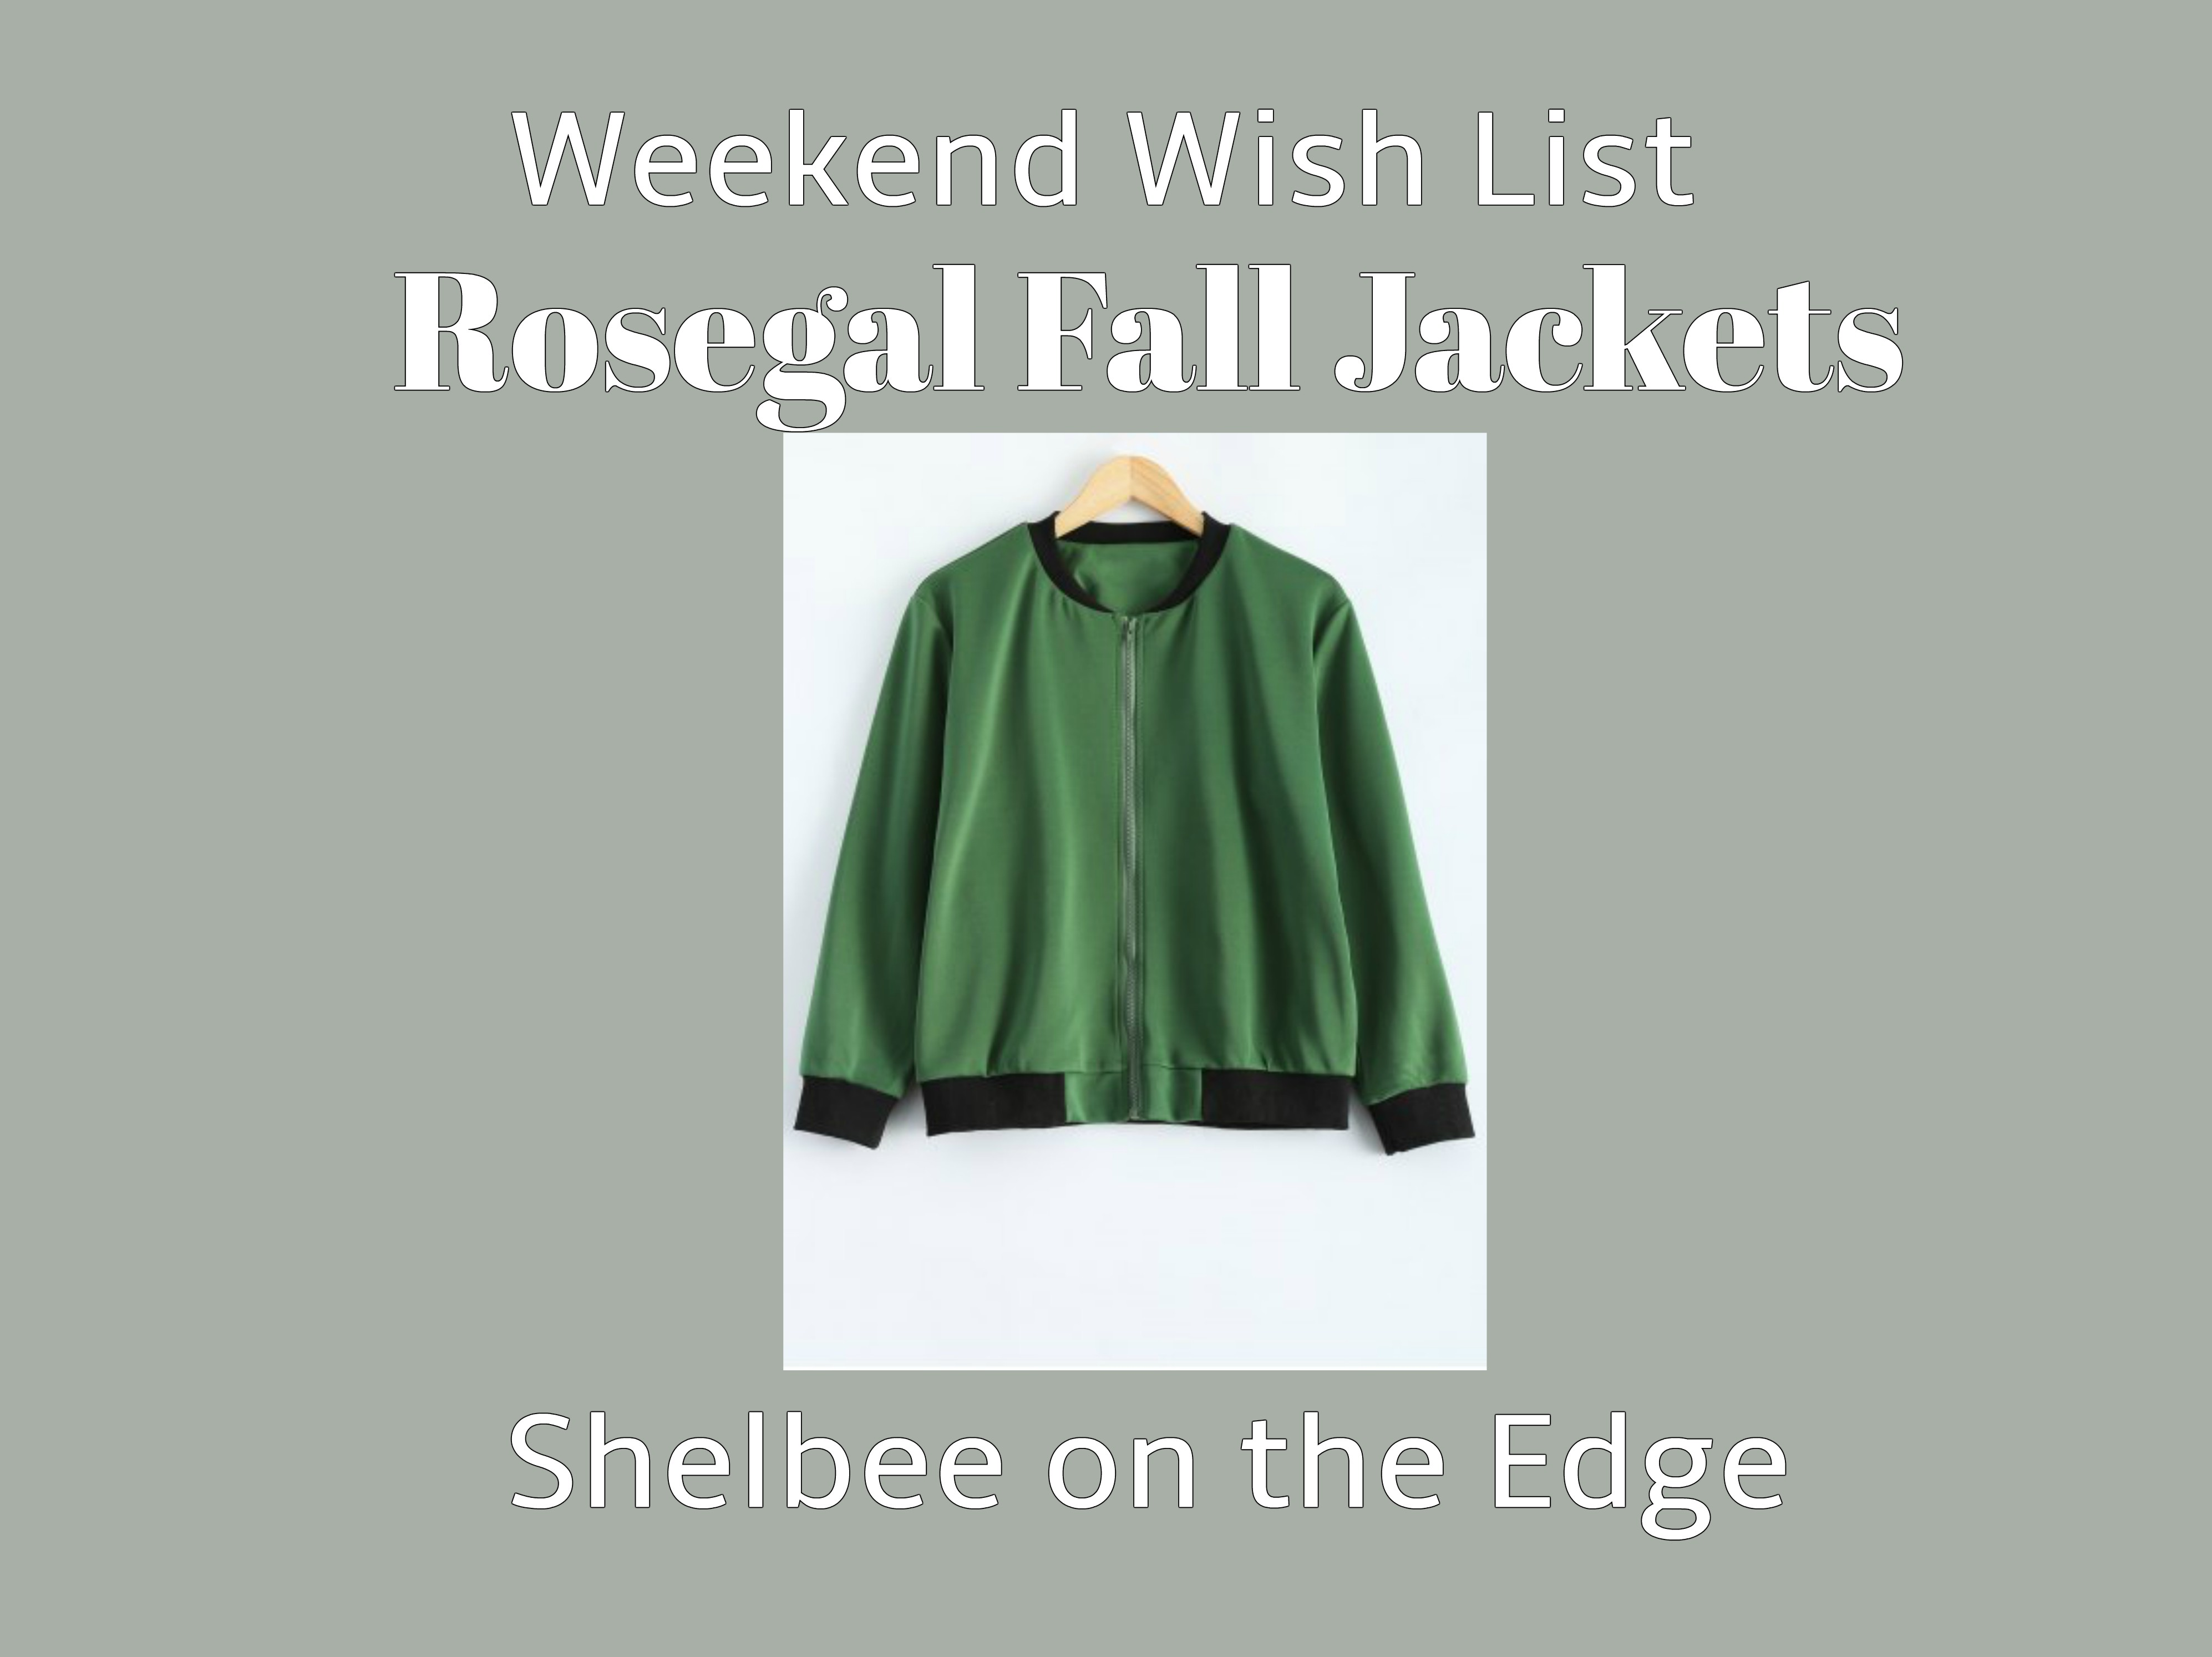 Weekend Wish List: Fall Jackets from Rosegal